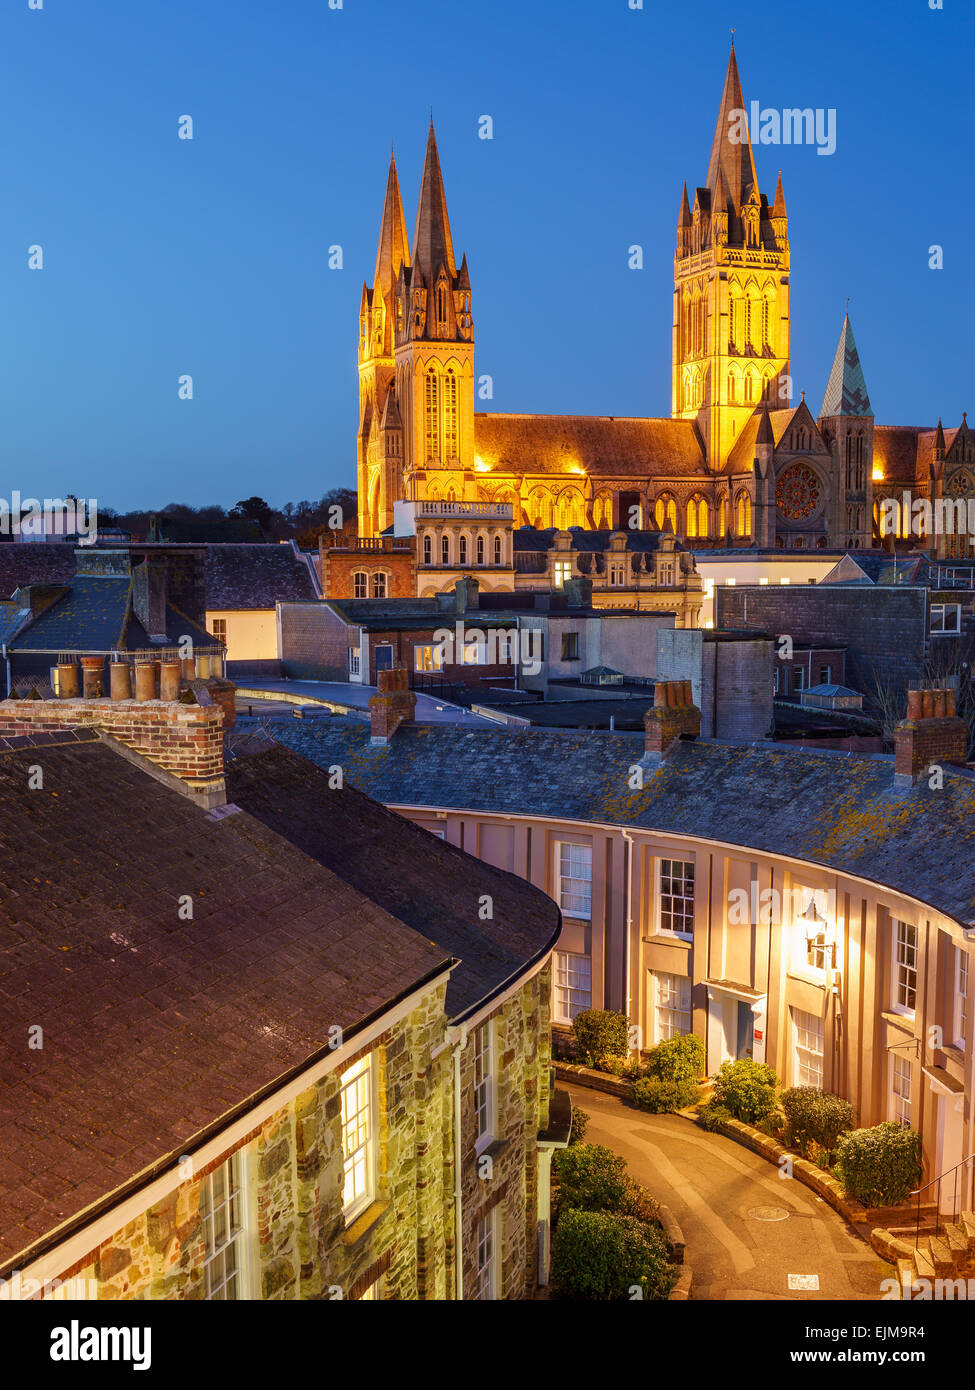 Rooftop view of Truro Cornwall England with the Cathedral illuminated at dusk - Stock Image